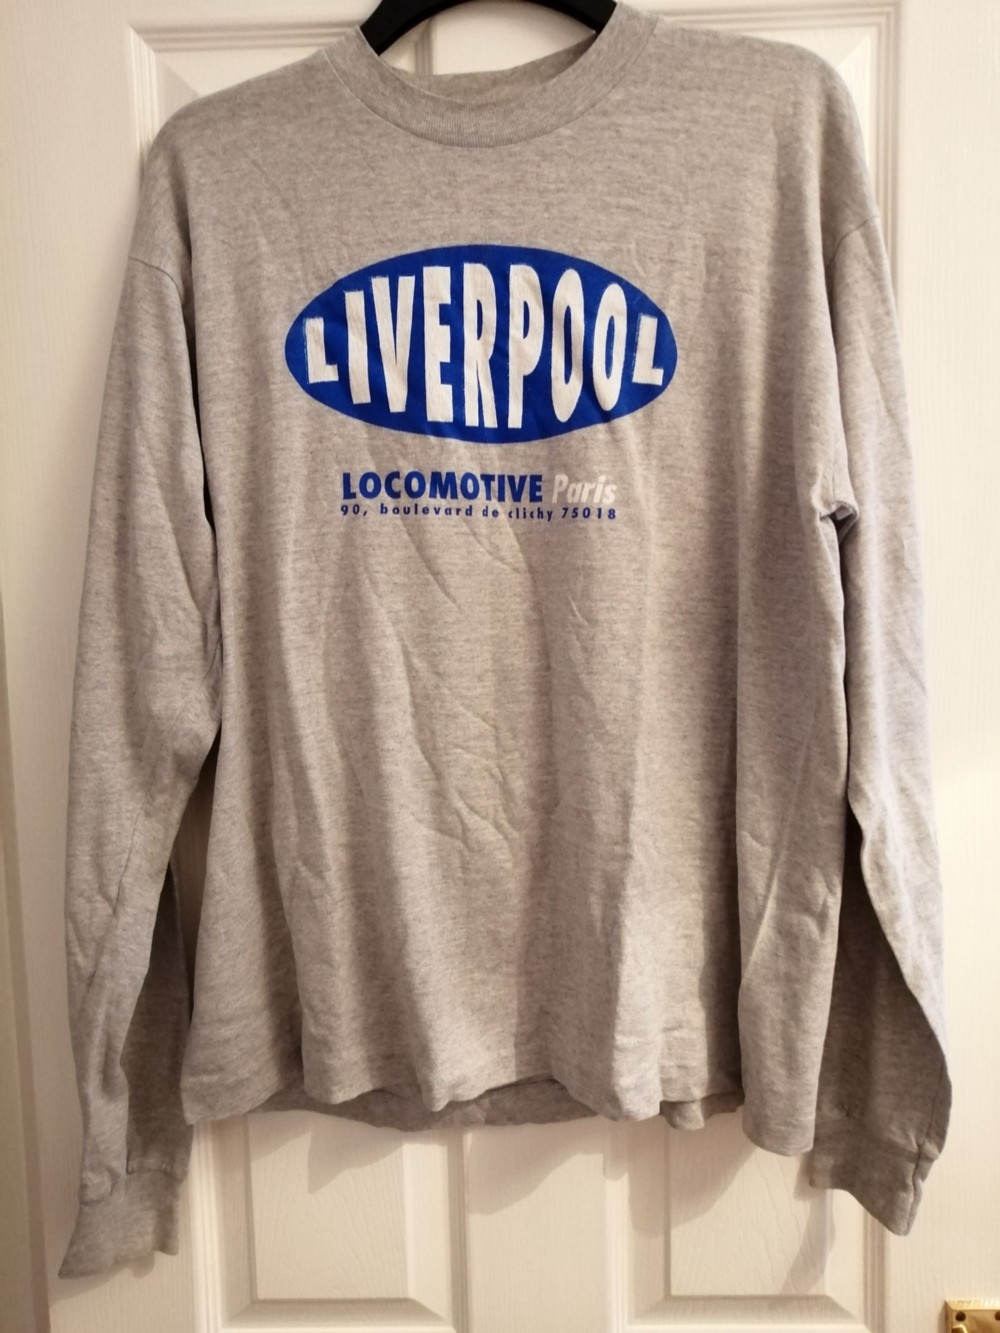 Liverpool in Paris long sleeved T shirt in grey with blue logo saying Liverpool on the front.